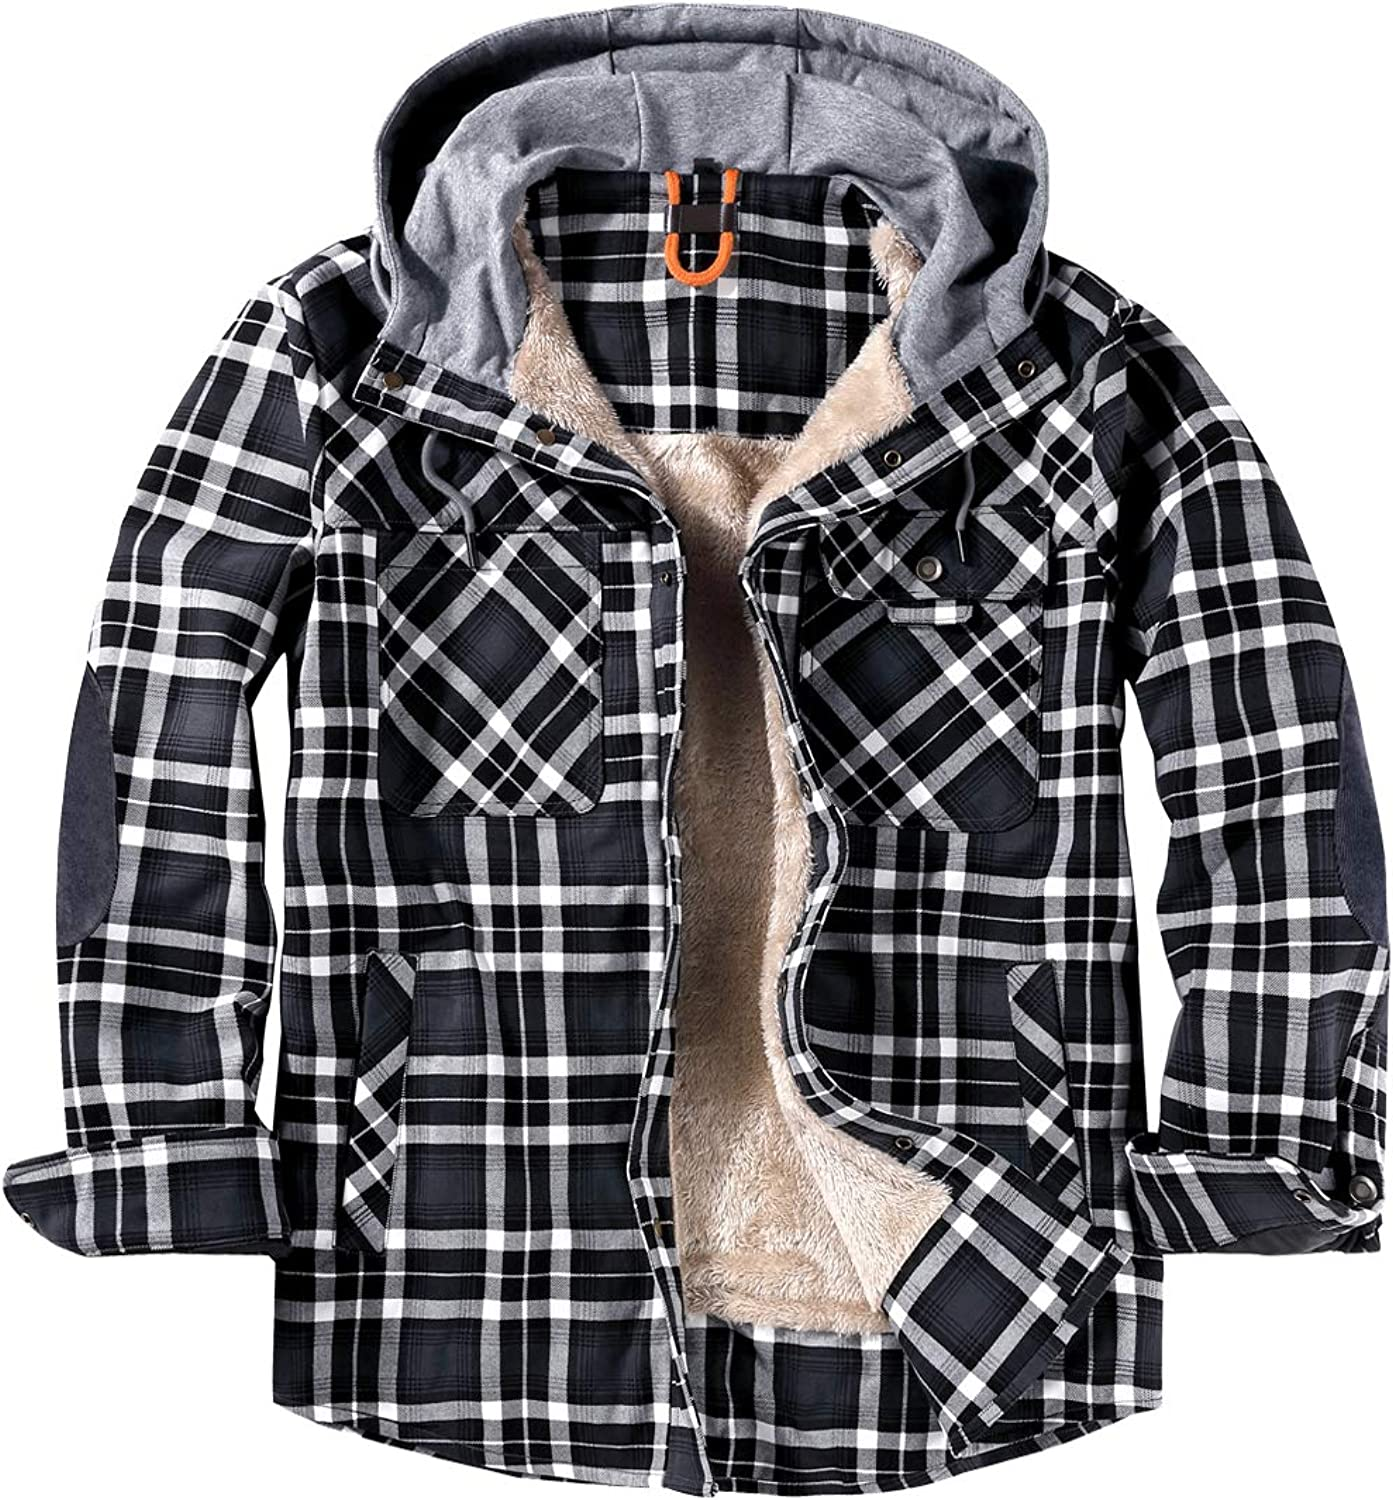 EUSMTD Mens Outdoor Casual Long Sleeve Corduroy Plaid Shir Thick Max Max 41% OFF 90% OFF